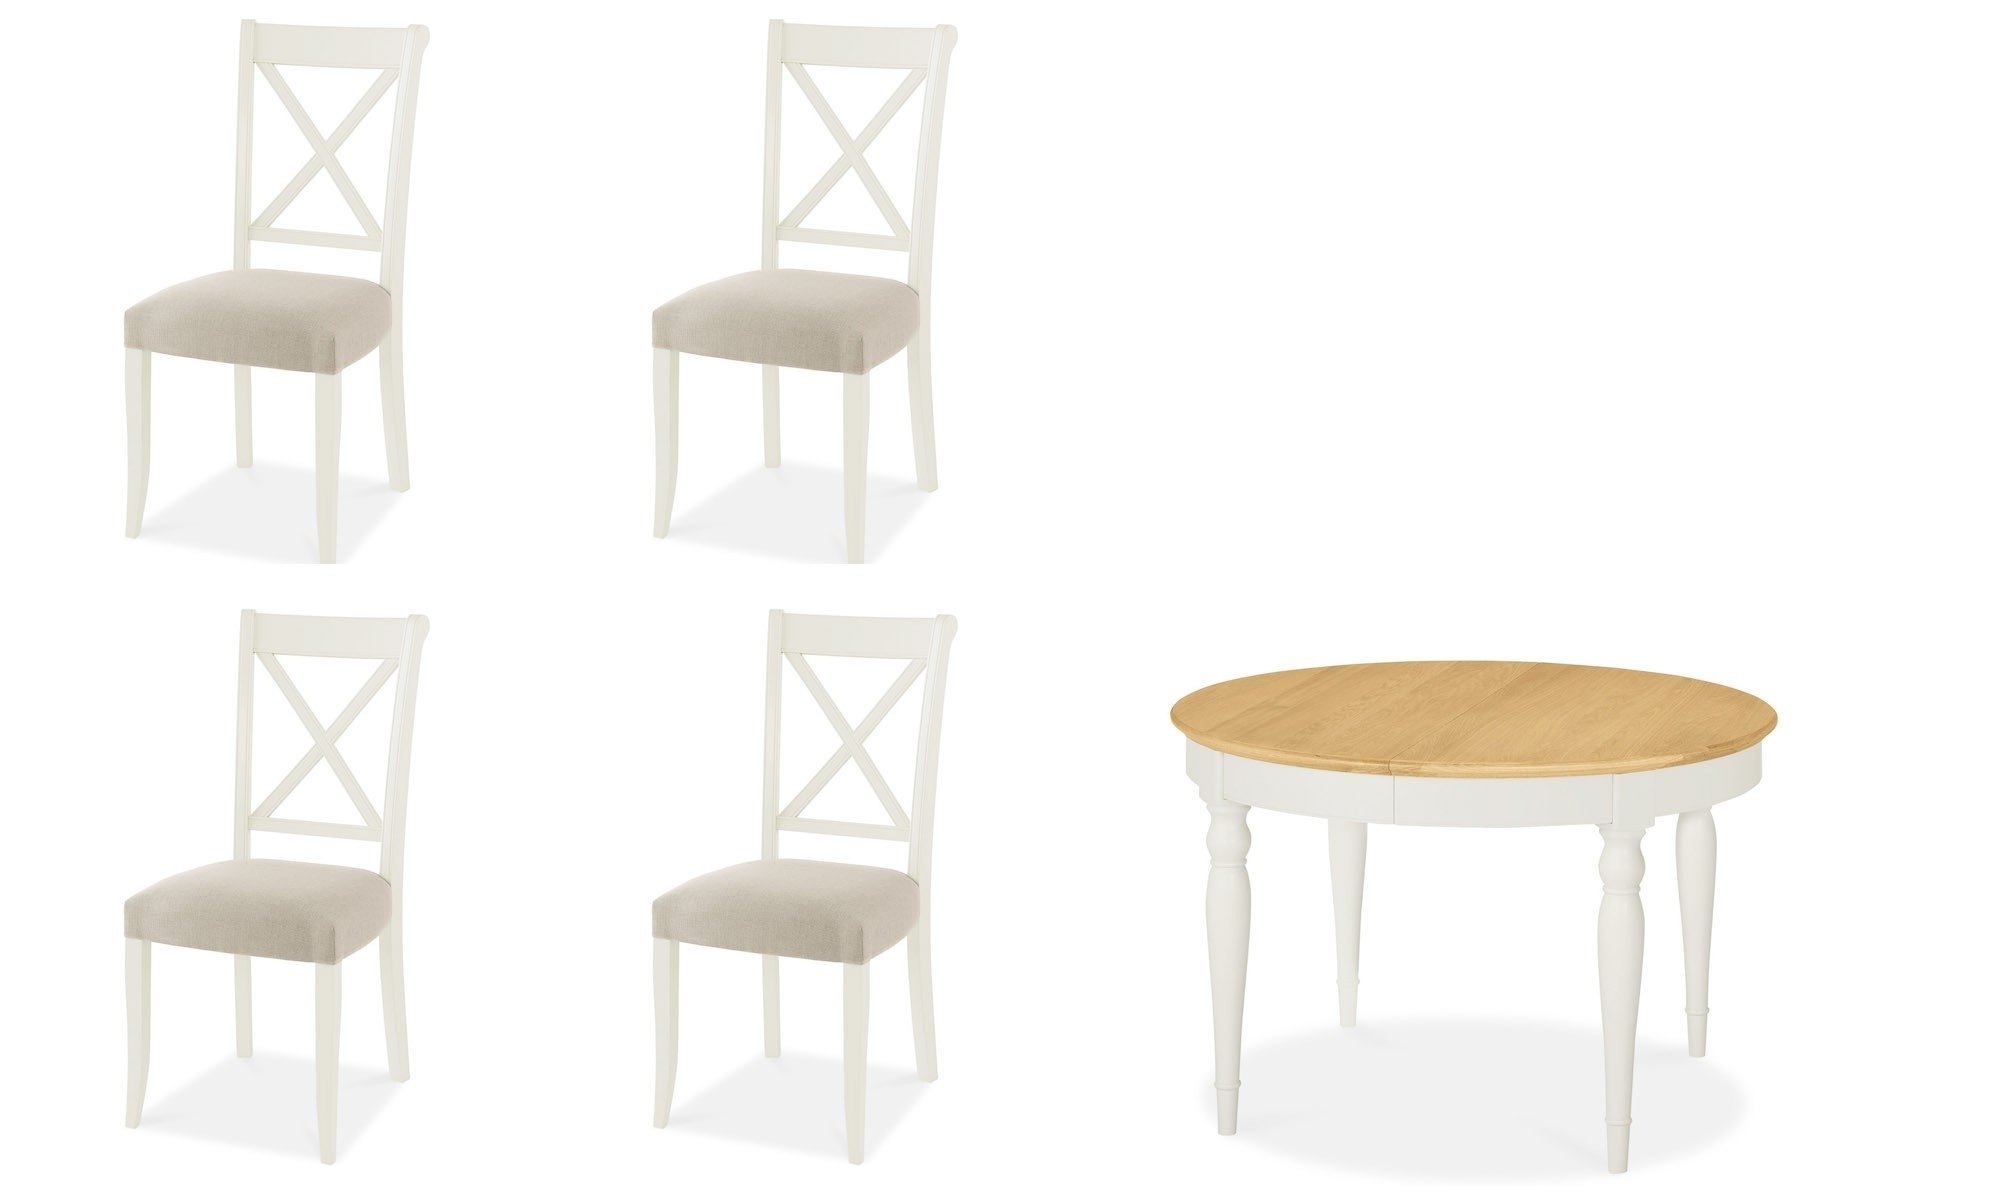 Georgie – Round Extending Dining Table And Chairs In Cream – Oak Top Intended For Well Liked Round Extending Oak Dining Tables And Chairs (View 8 of 25)